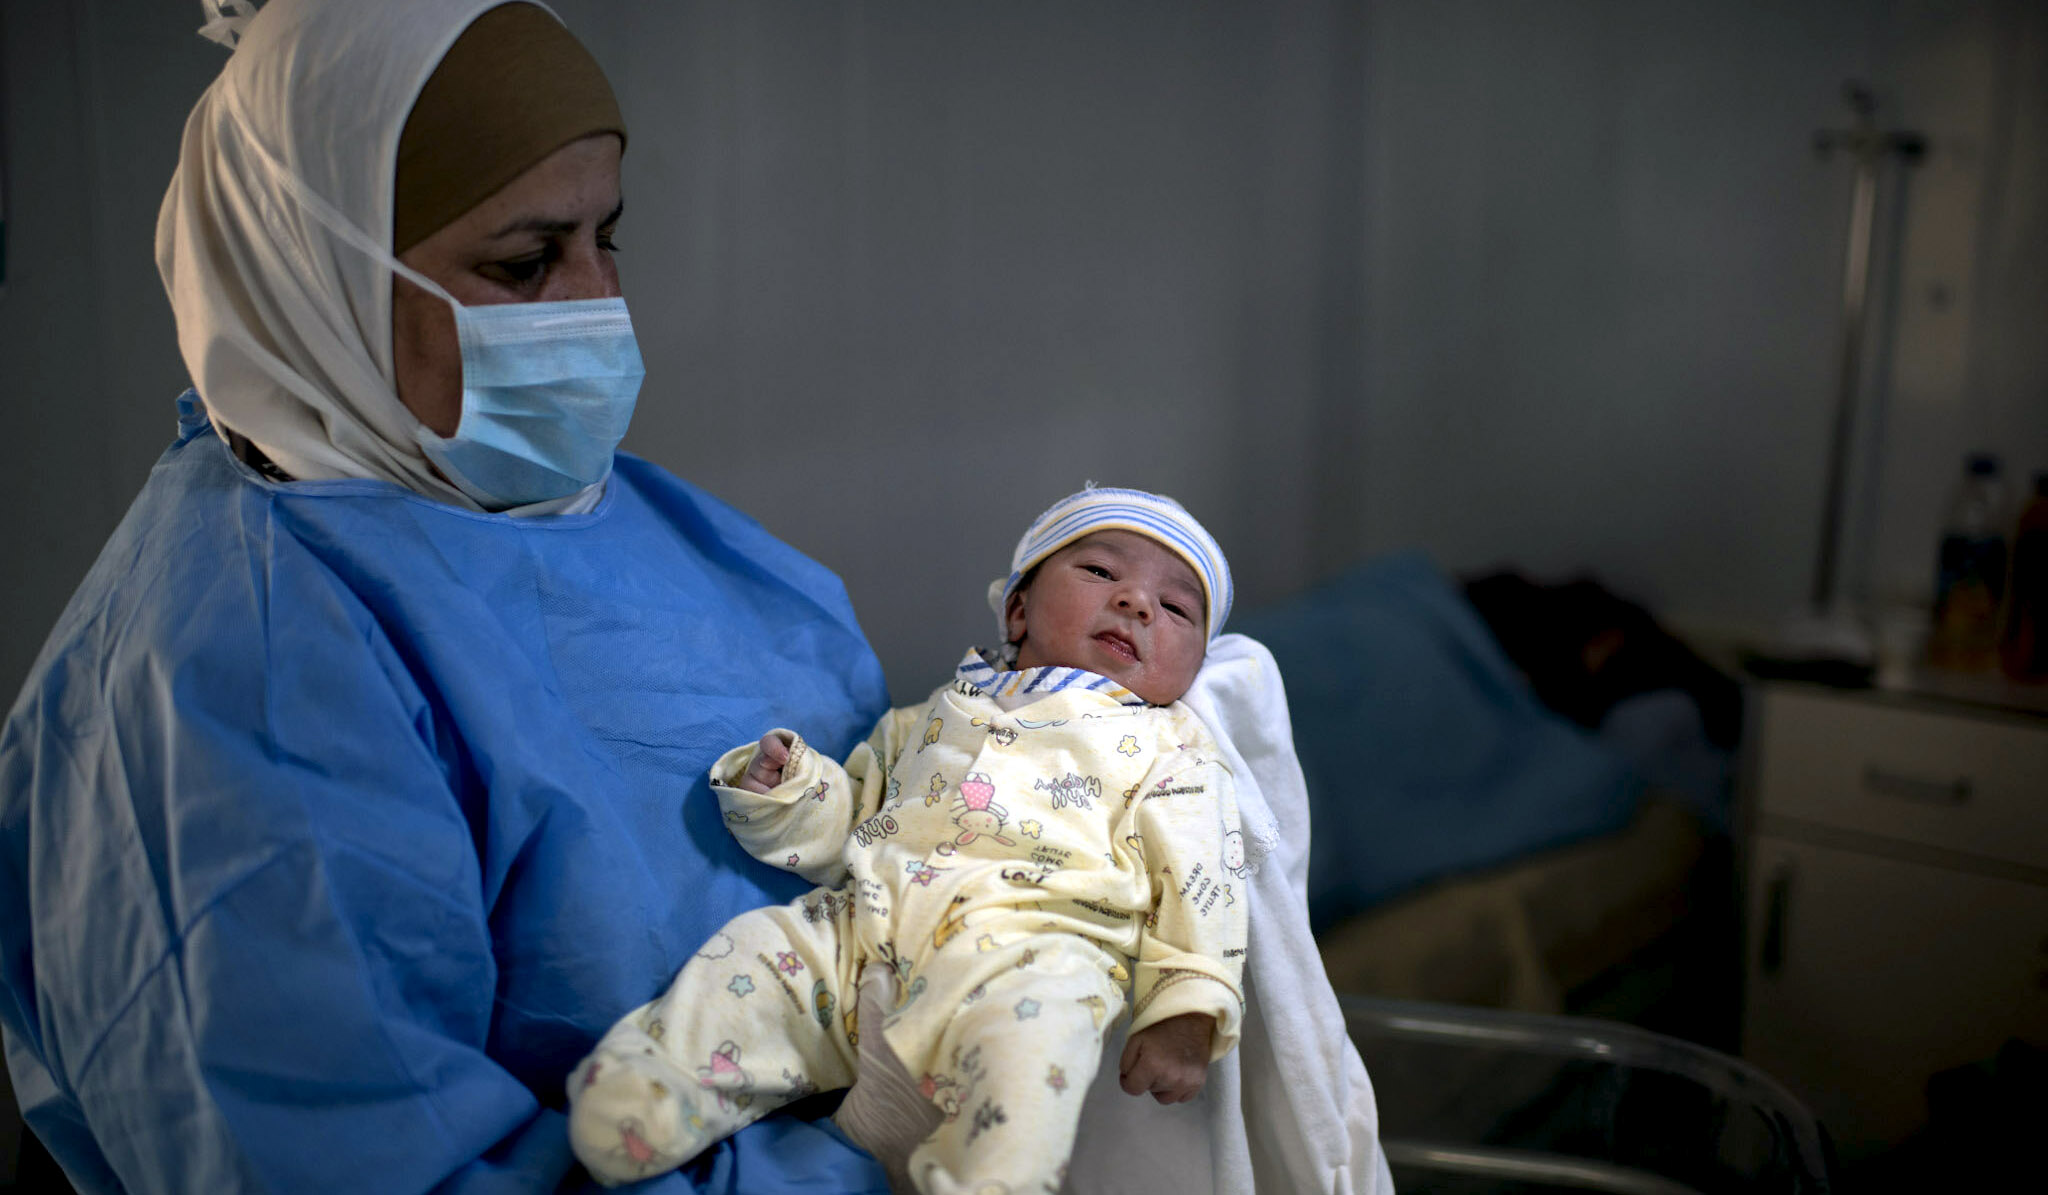 Medical staff at a medical facility at the Azraq Camps holds up a newborn baby.